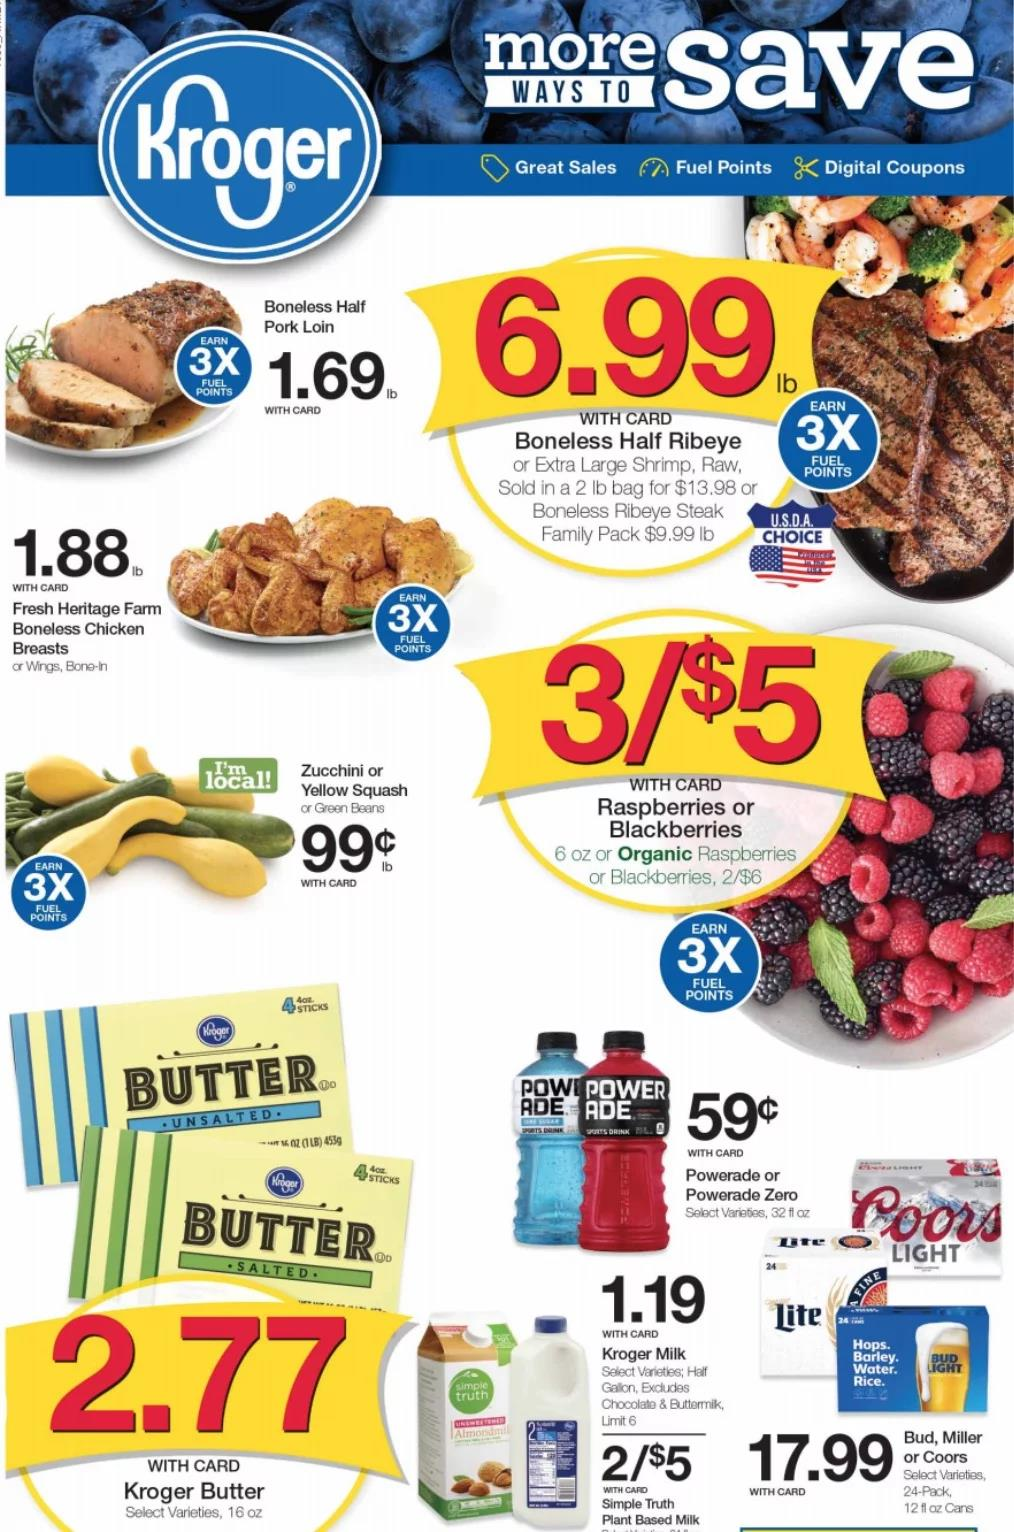 Cvs Pharmacy Coupons >> Kroger Weekly Ad Preview Oct 30 - Nov 5, 2019